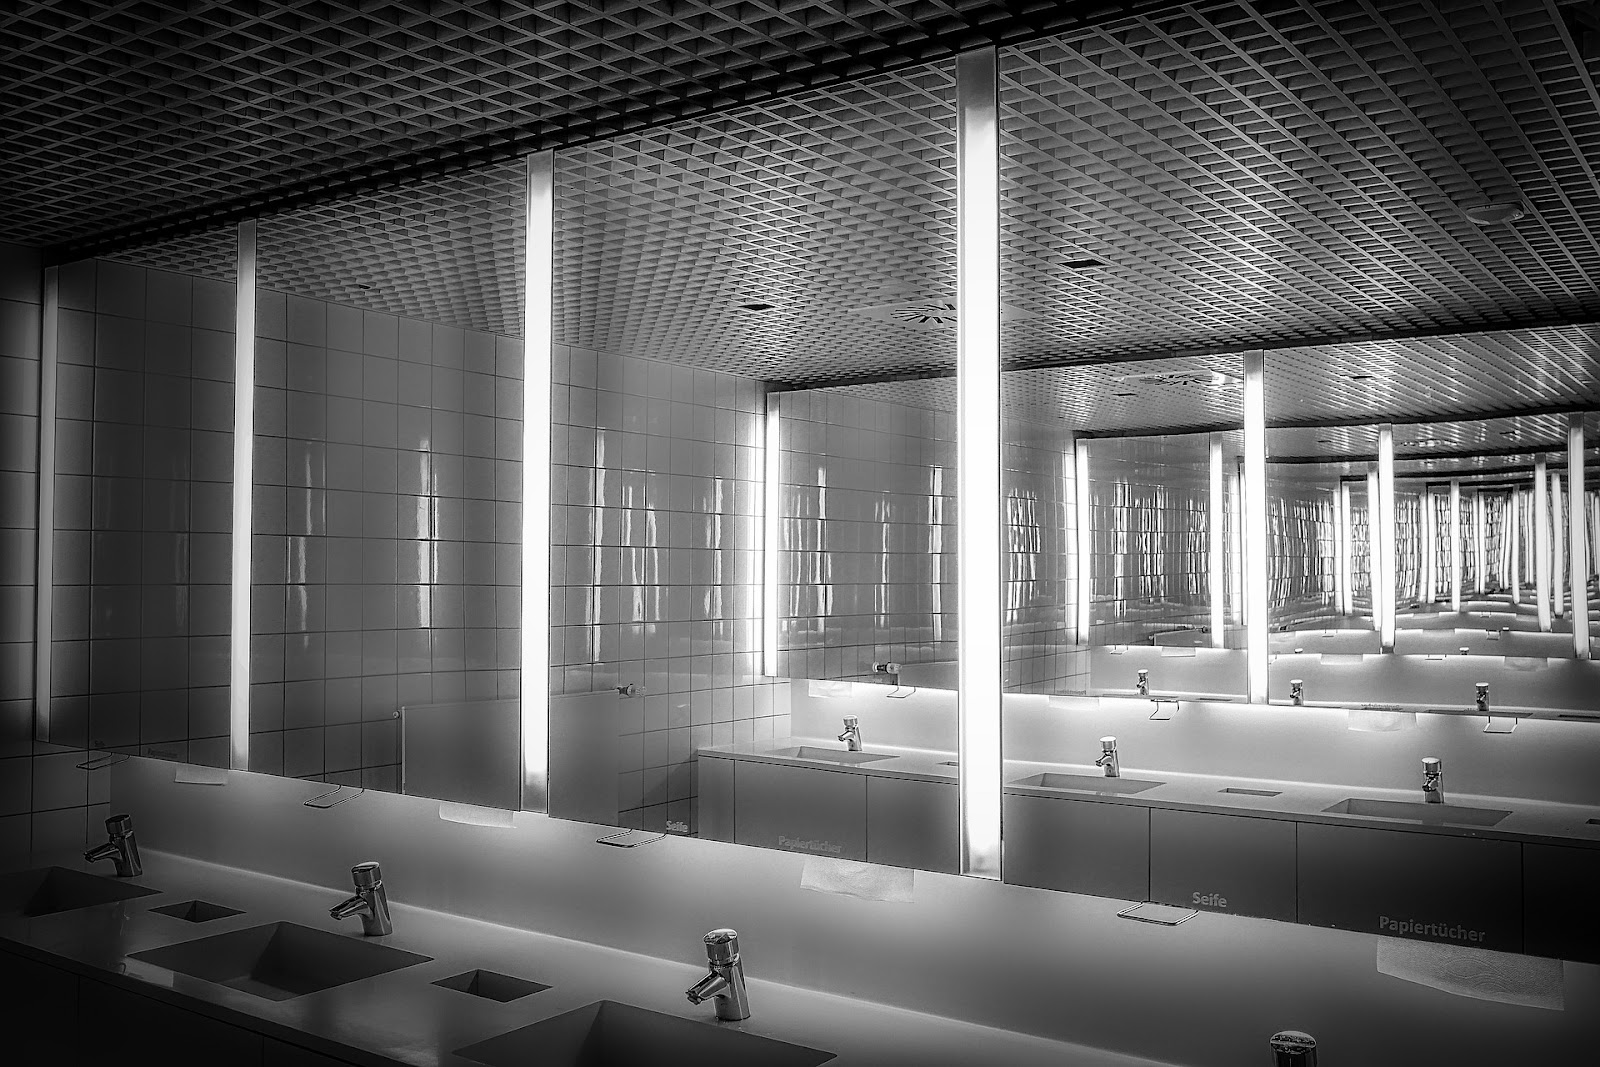 Two bathroom mirrors make what appears to be a never ending reflection of each other, similar to the effects of an infinity mirror.